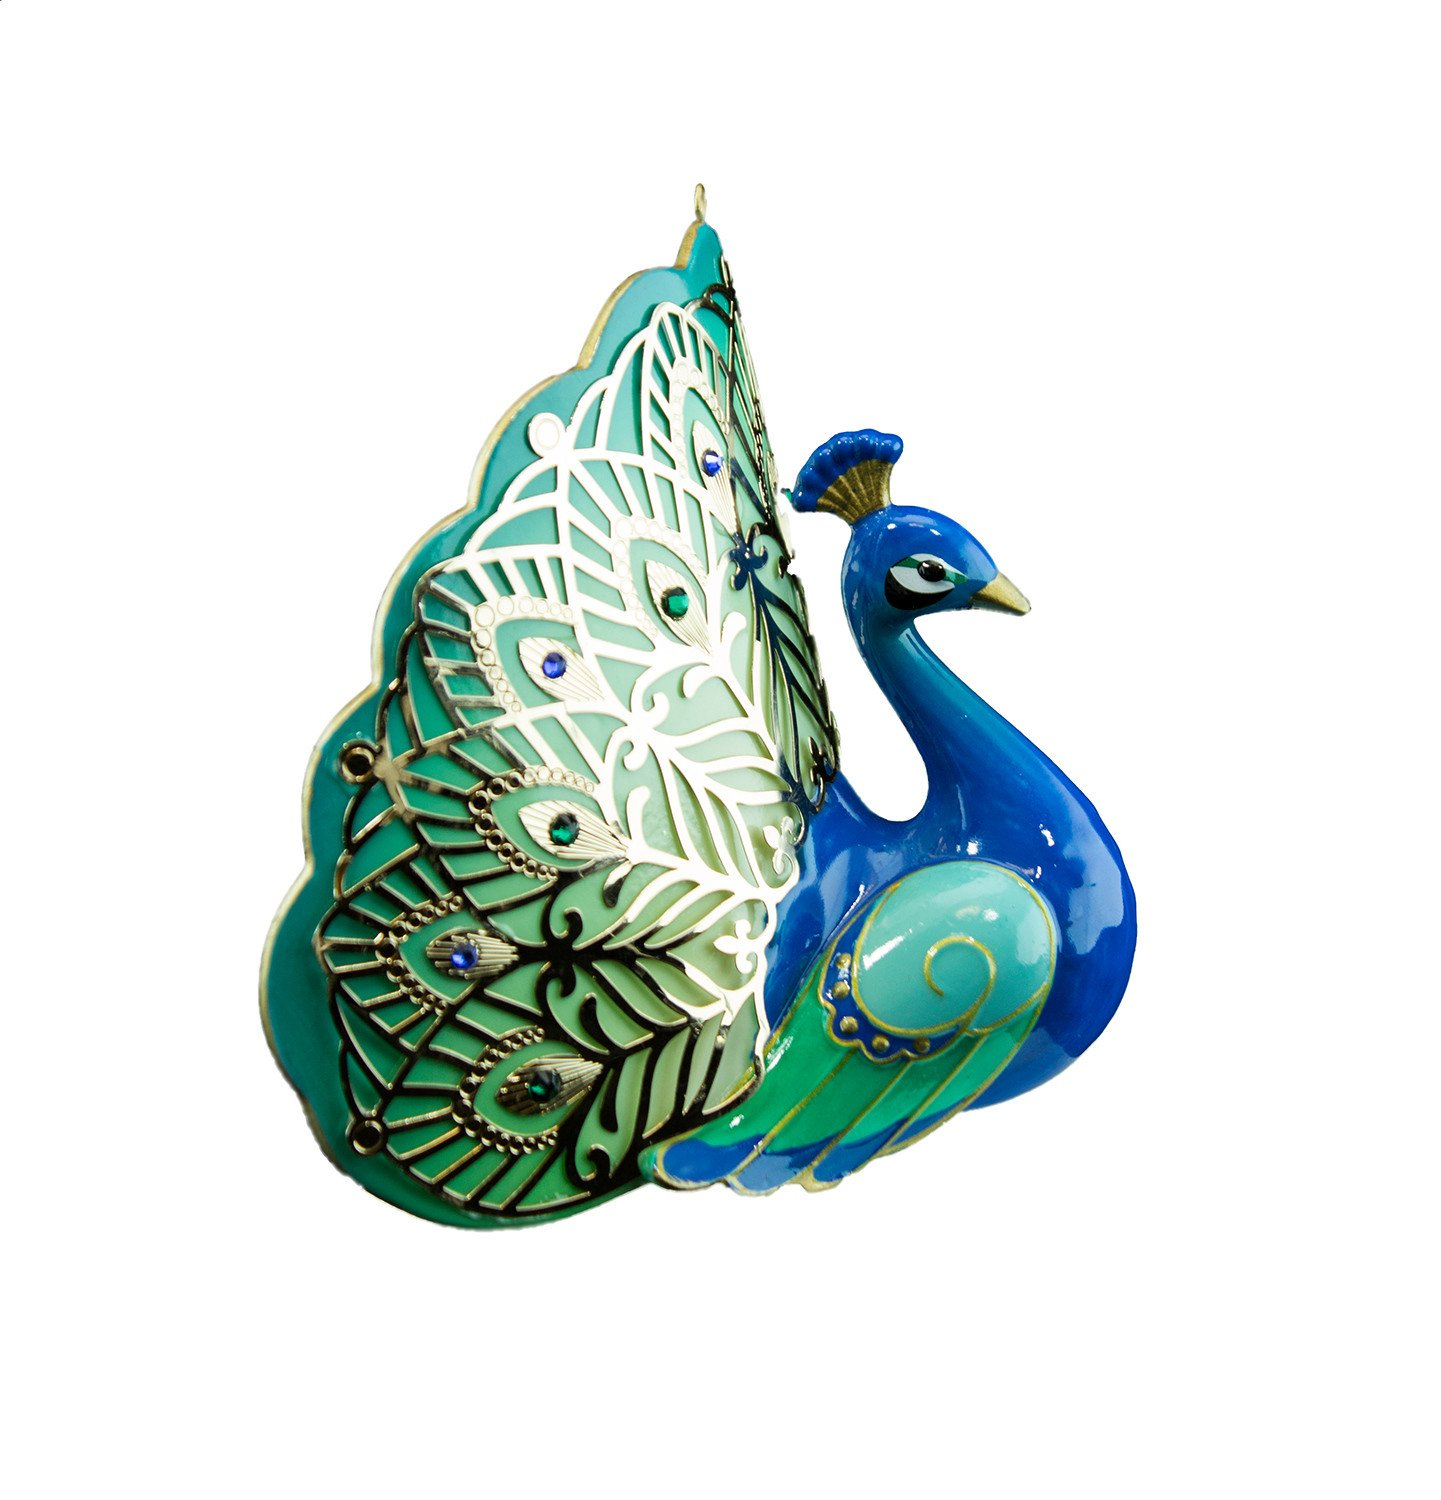 Hallmark 2016 Christmas Ornaments Pretty Peacock